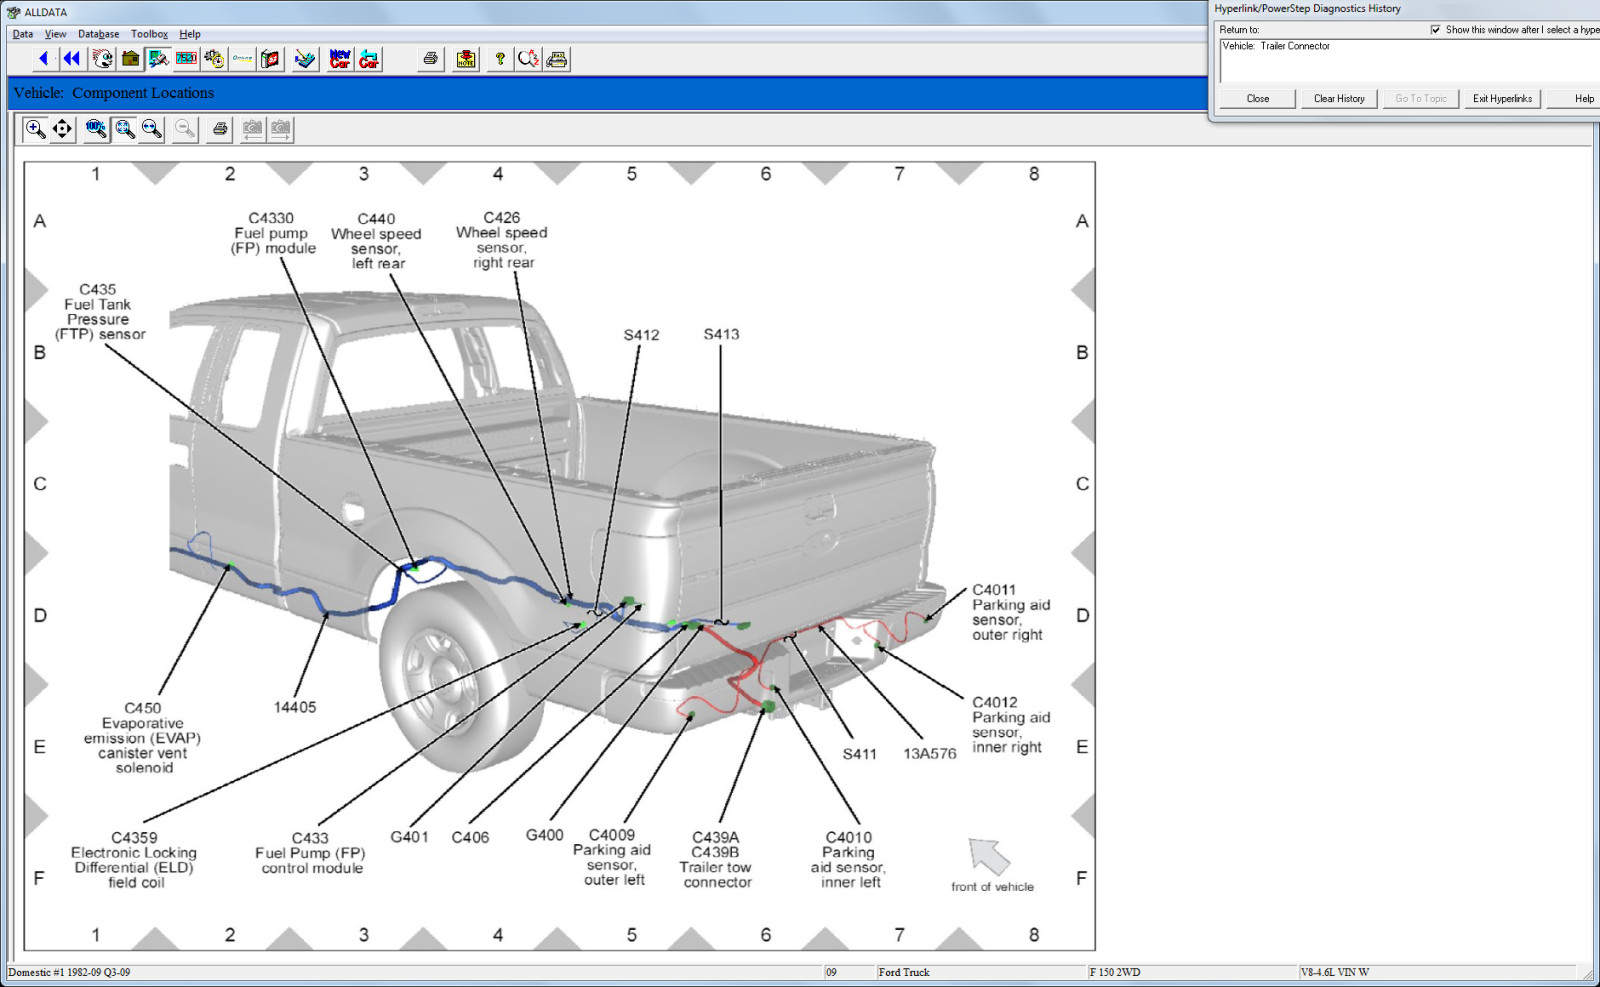 5 Pin Trailer Plug Wiring Diagram With For 7 Blade Jpg Throughout In - Wiring Diagram 7 Pin Trailer Plug Ford